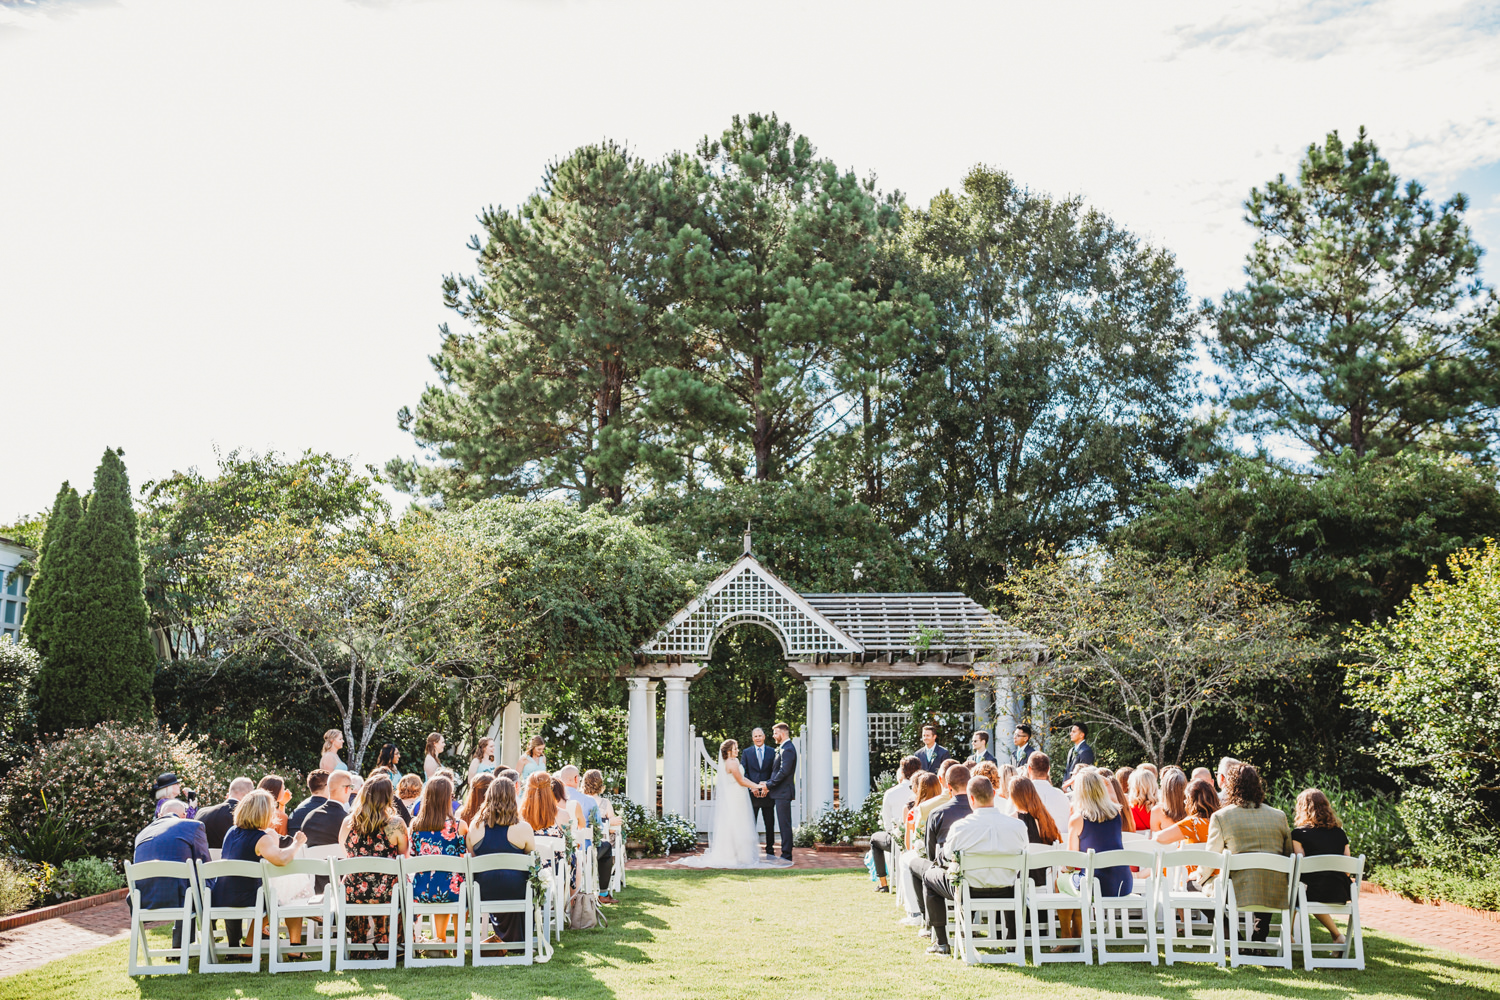 Daniel Stowe Botanical Garden wedding, Daniel Stowe garden wedding, Charlotte wedding photographer, Charlotte North Carolina wedding photographer, Wedding Venues Charlotte North Carolina, Garden Wedding, Charlotte North Carolina Wedding, Downtown Charlotte Wedding, Charleston Wedding Photographer, North Carolina Elopement Photographer, wedding photography, wedding inspiration, wedding photos, wedding ceremony outdoor, wedding ceremony decorations, wedding ceremony kiss, wedding ceremony photos